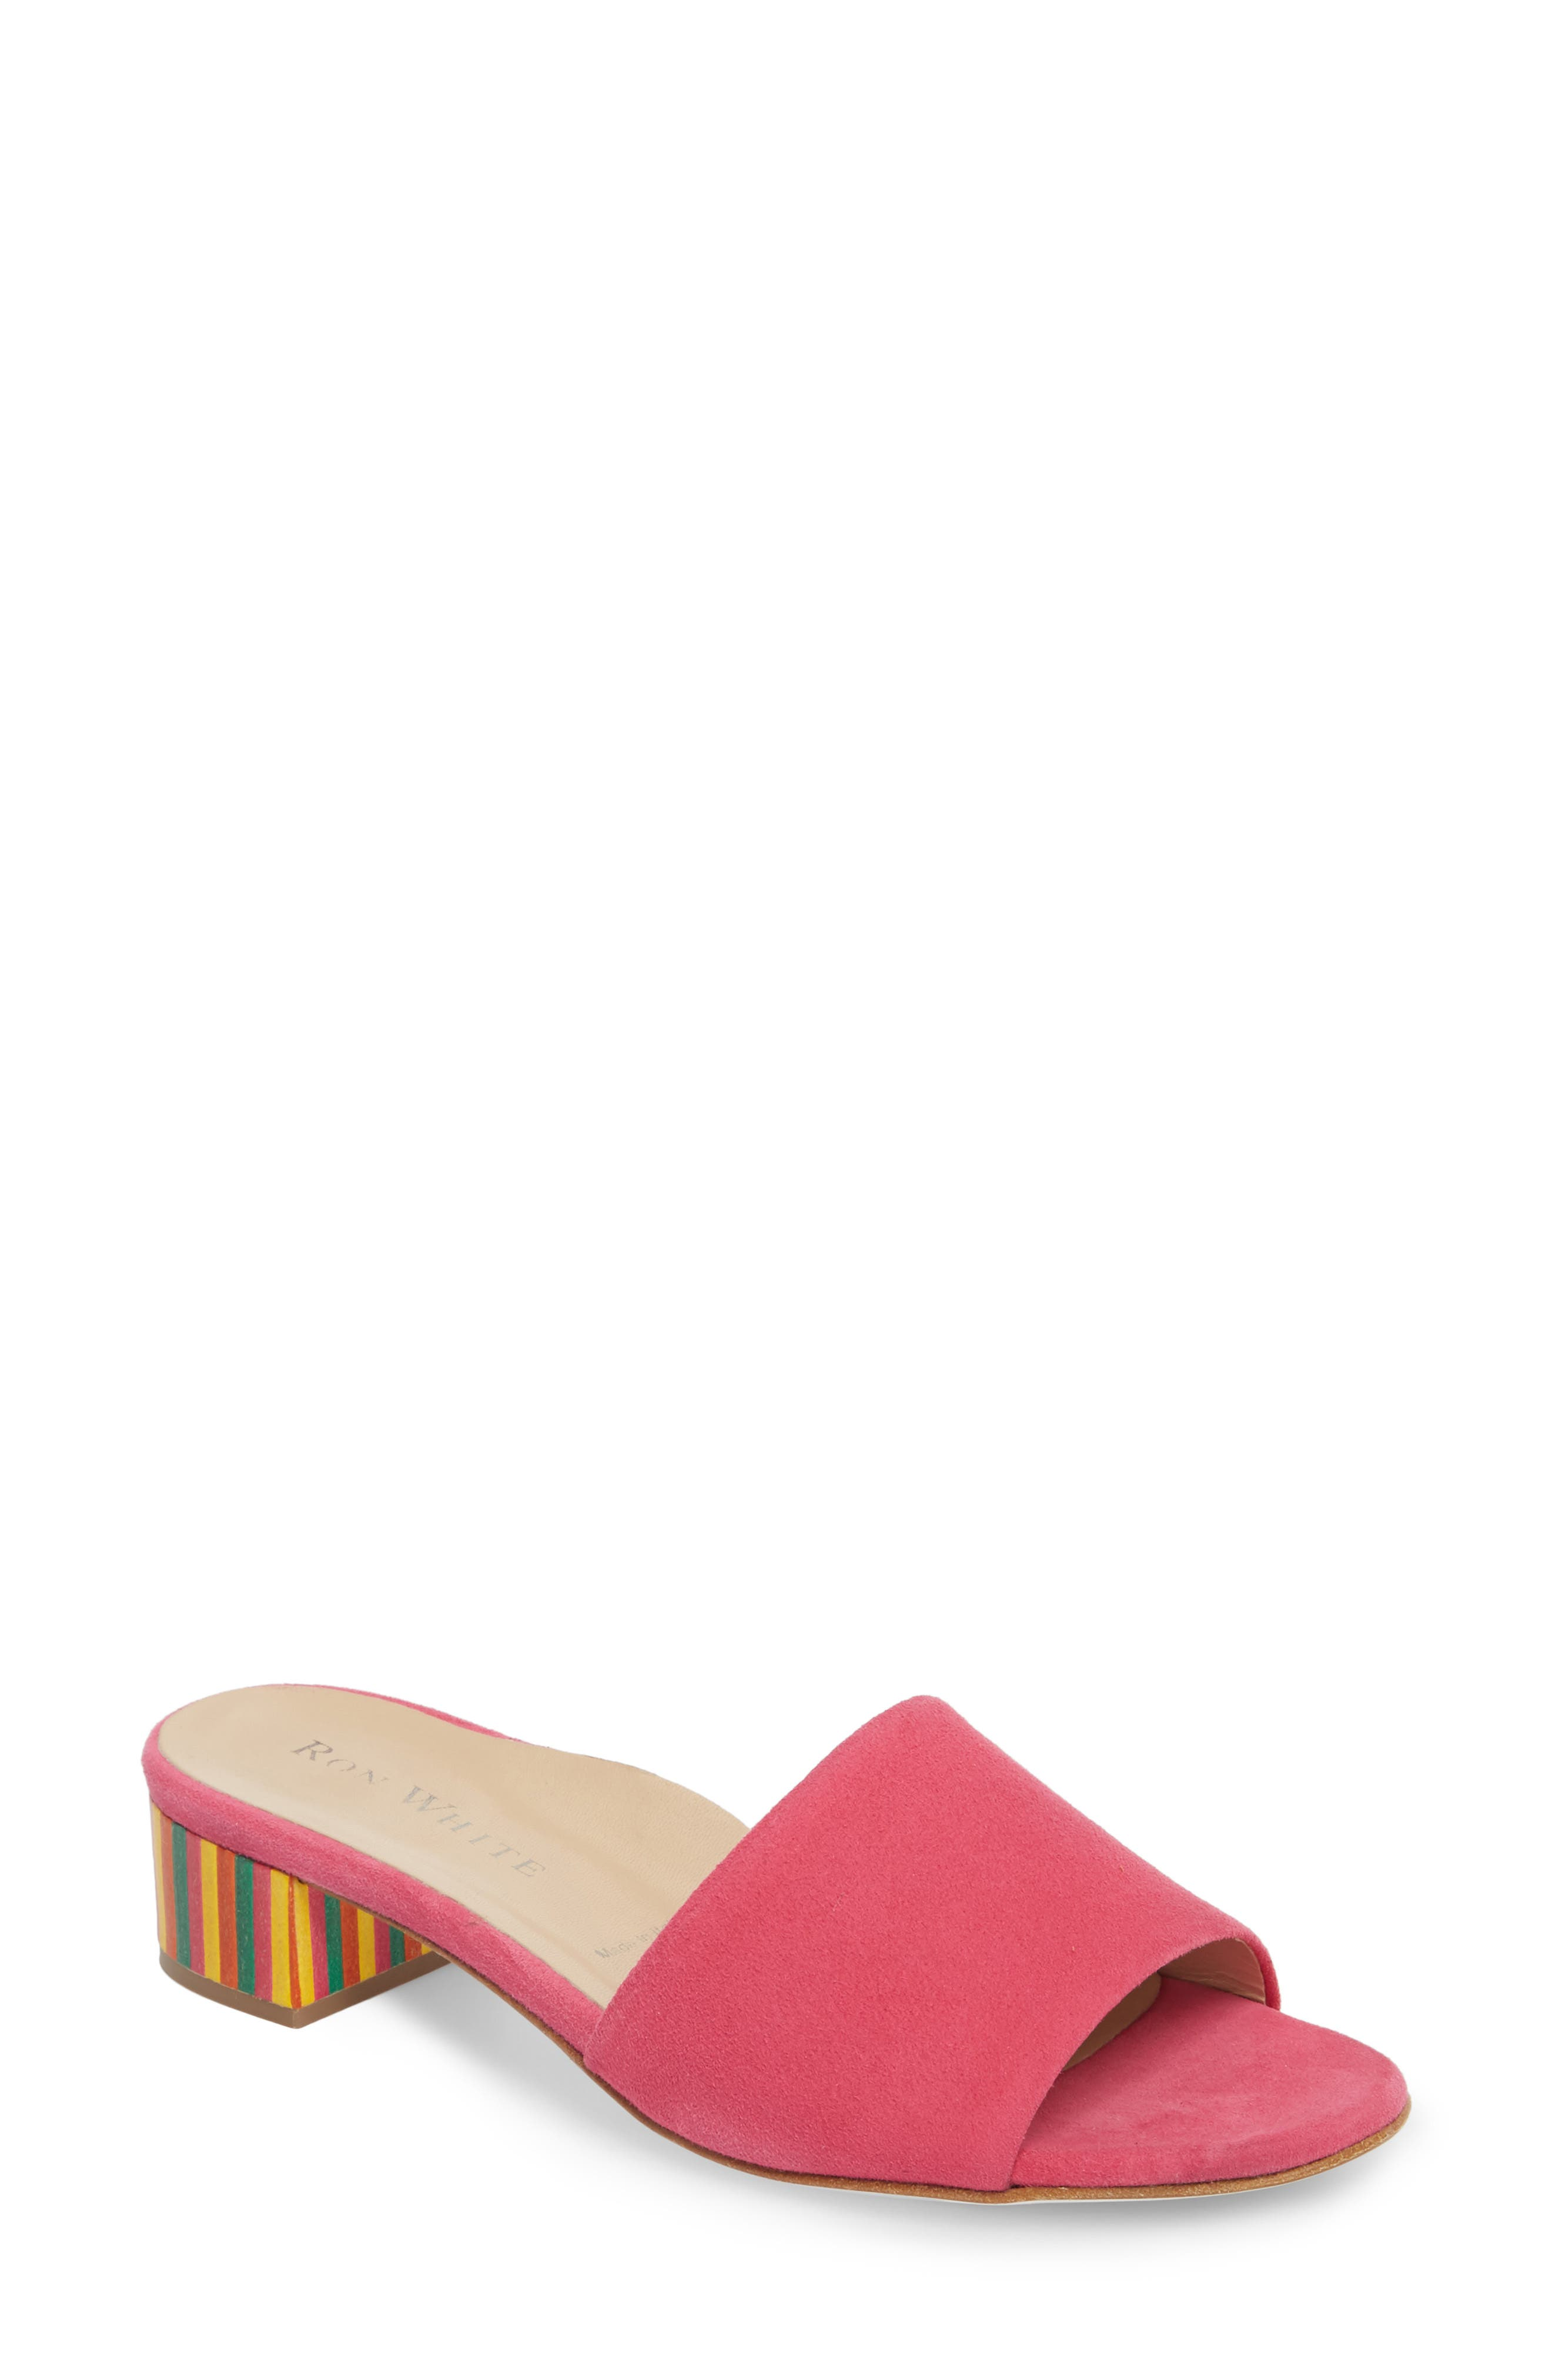 Esmarie Slide Sandal,                             Main thumbnail 1, color,                             670